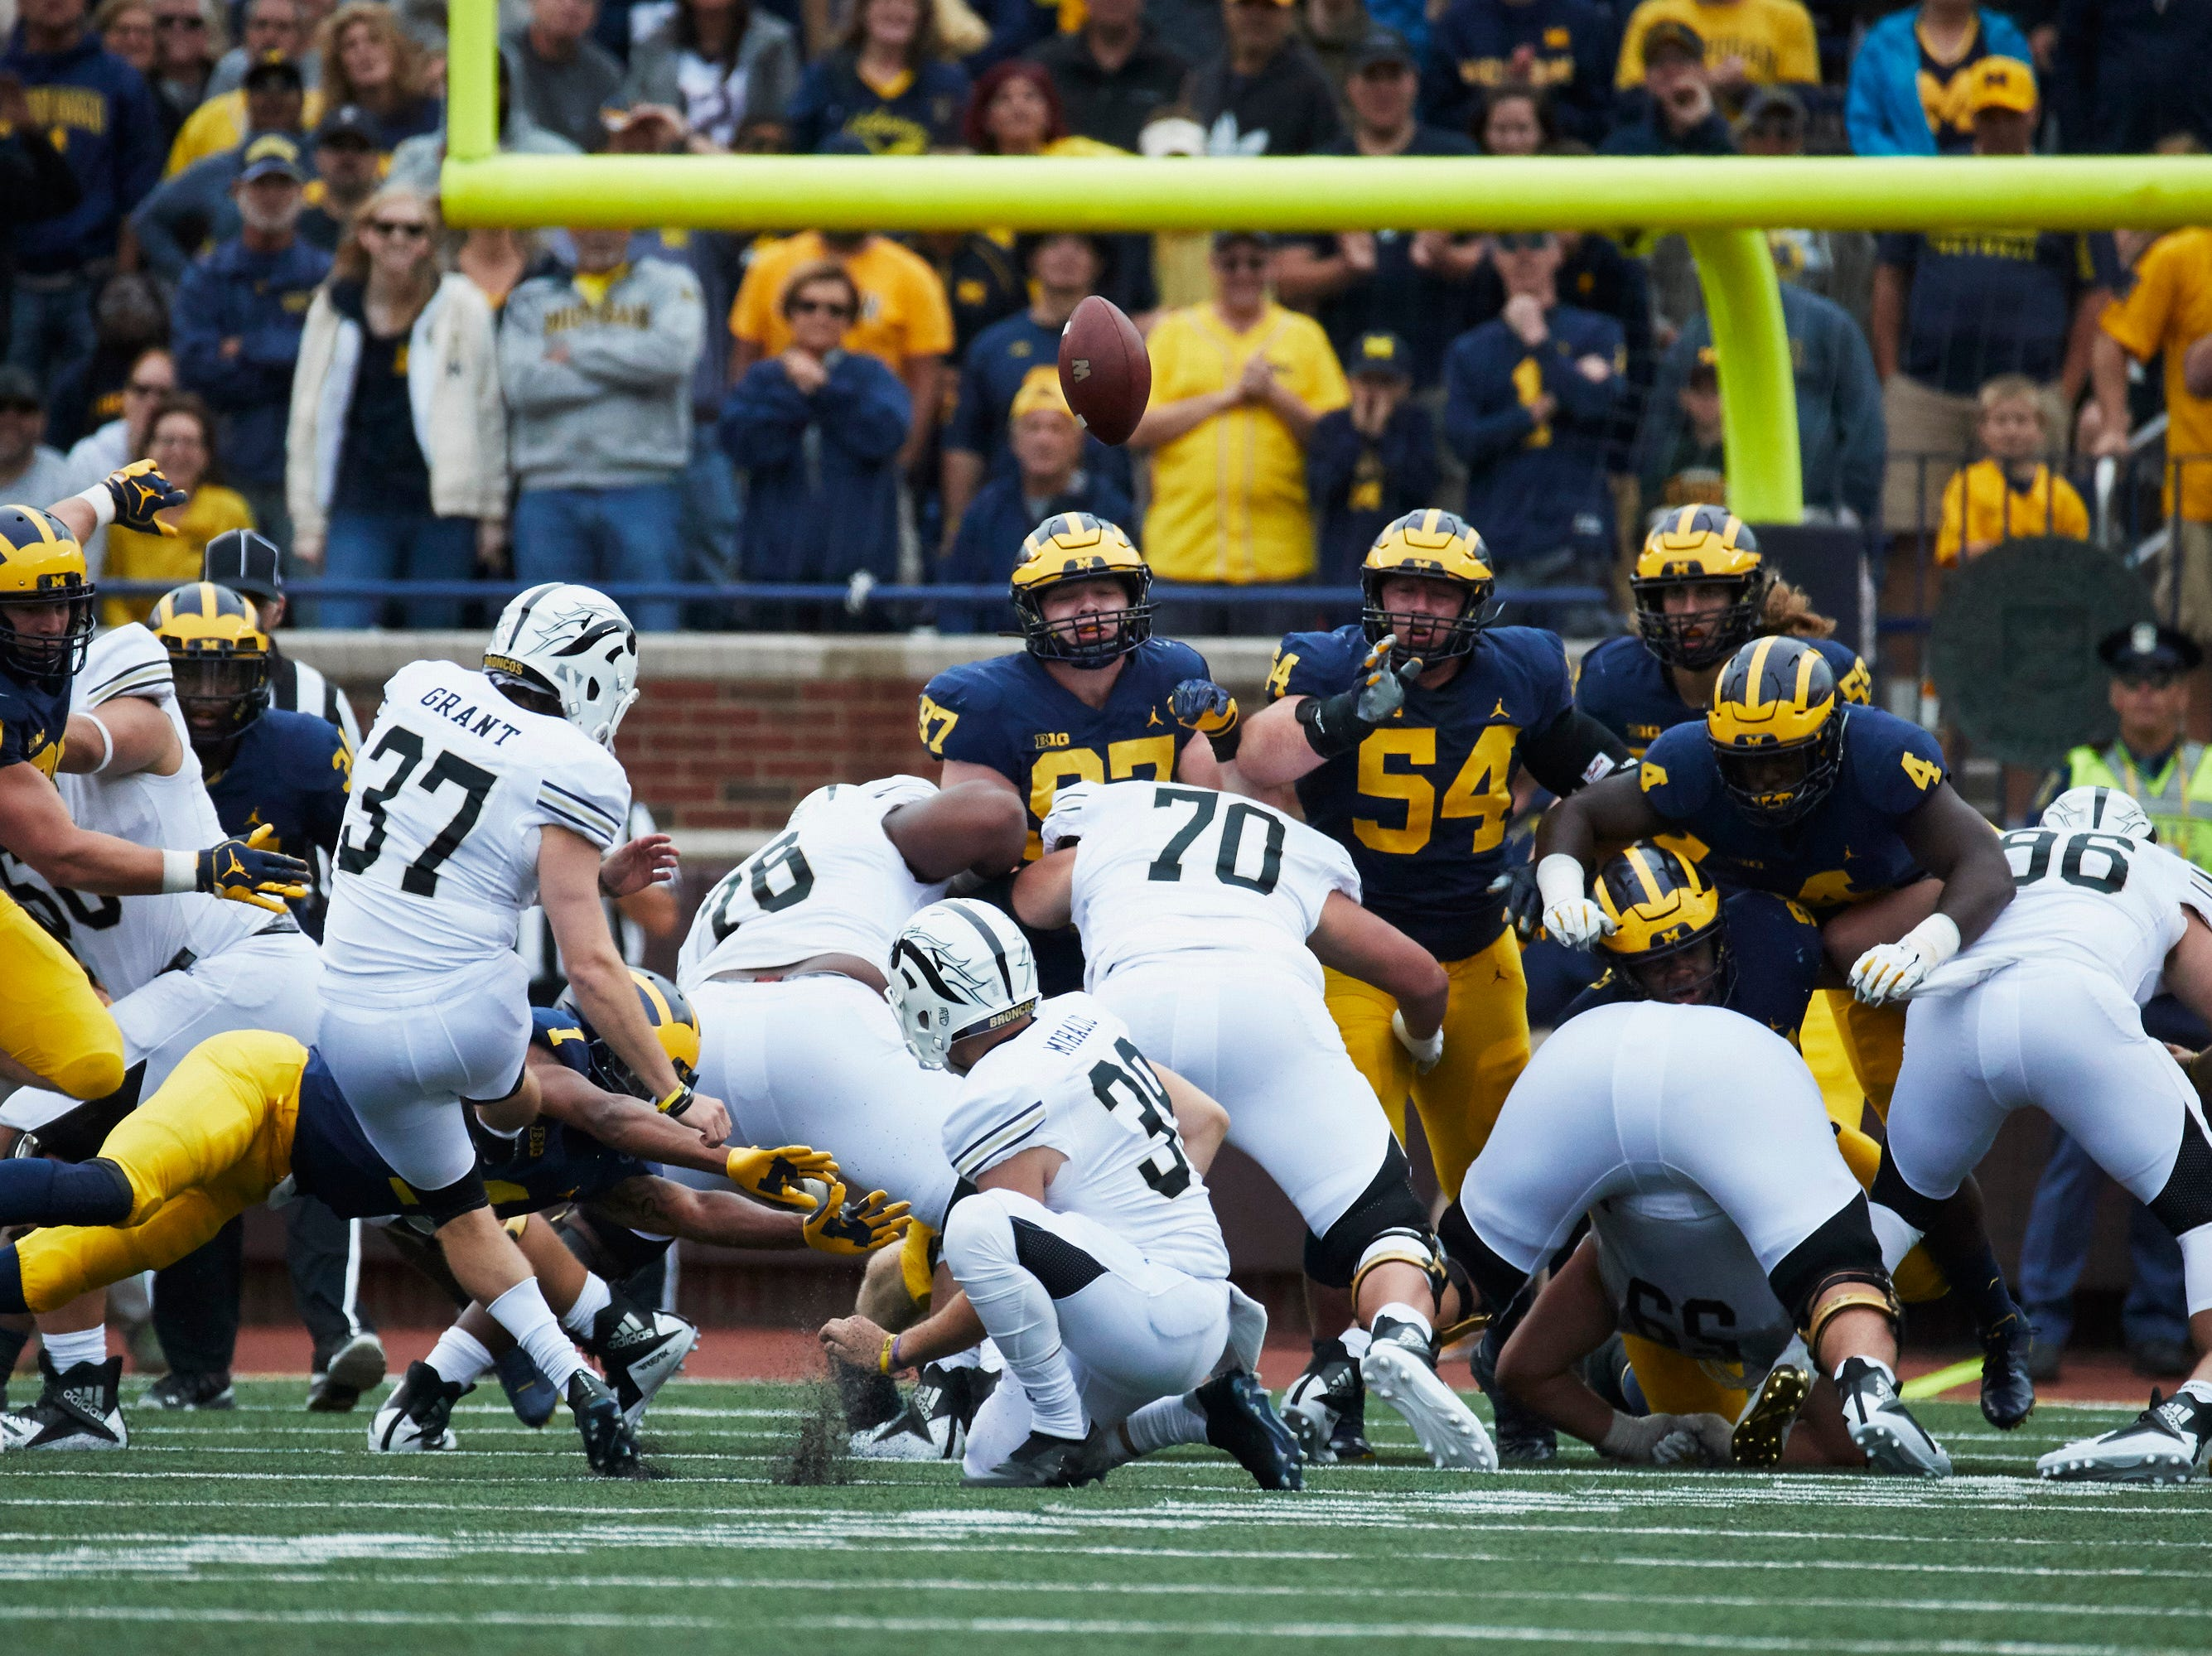 Sep 8, 2018; Ann Arbor, MI, USA; Western Michigan Broncos place kicker Josh Grant (37) kicks a field goal in the second half against the Michigan Wolverines at Michigan Stadium. Mandatory Credit: Rick Osentoski-USA TODAY Sports